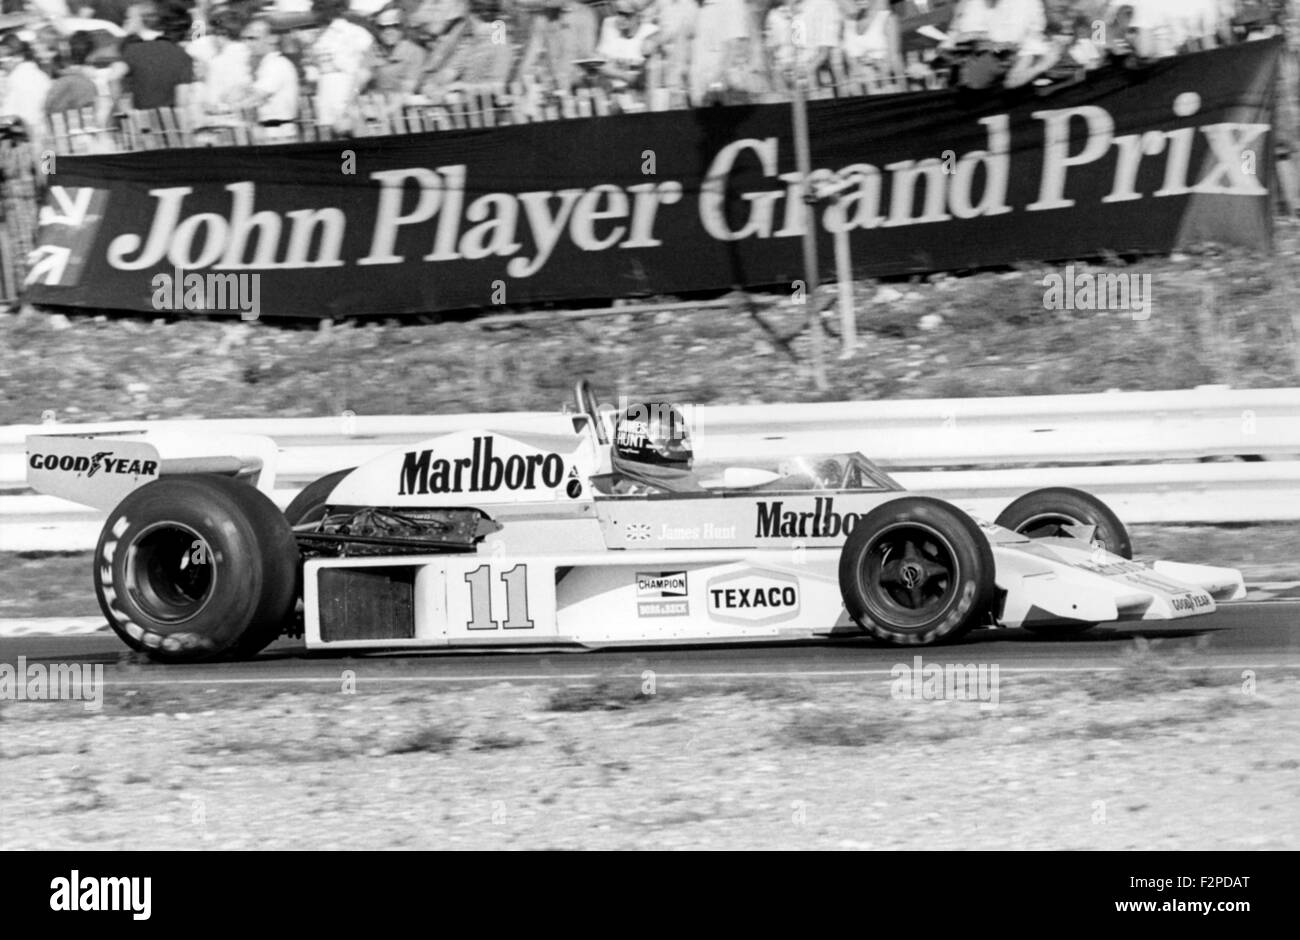 James Hunt in a McLaren M23 at the British GP at Brands Hatch 1976 - Stock Image